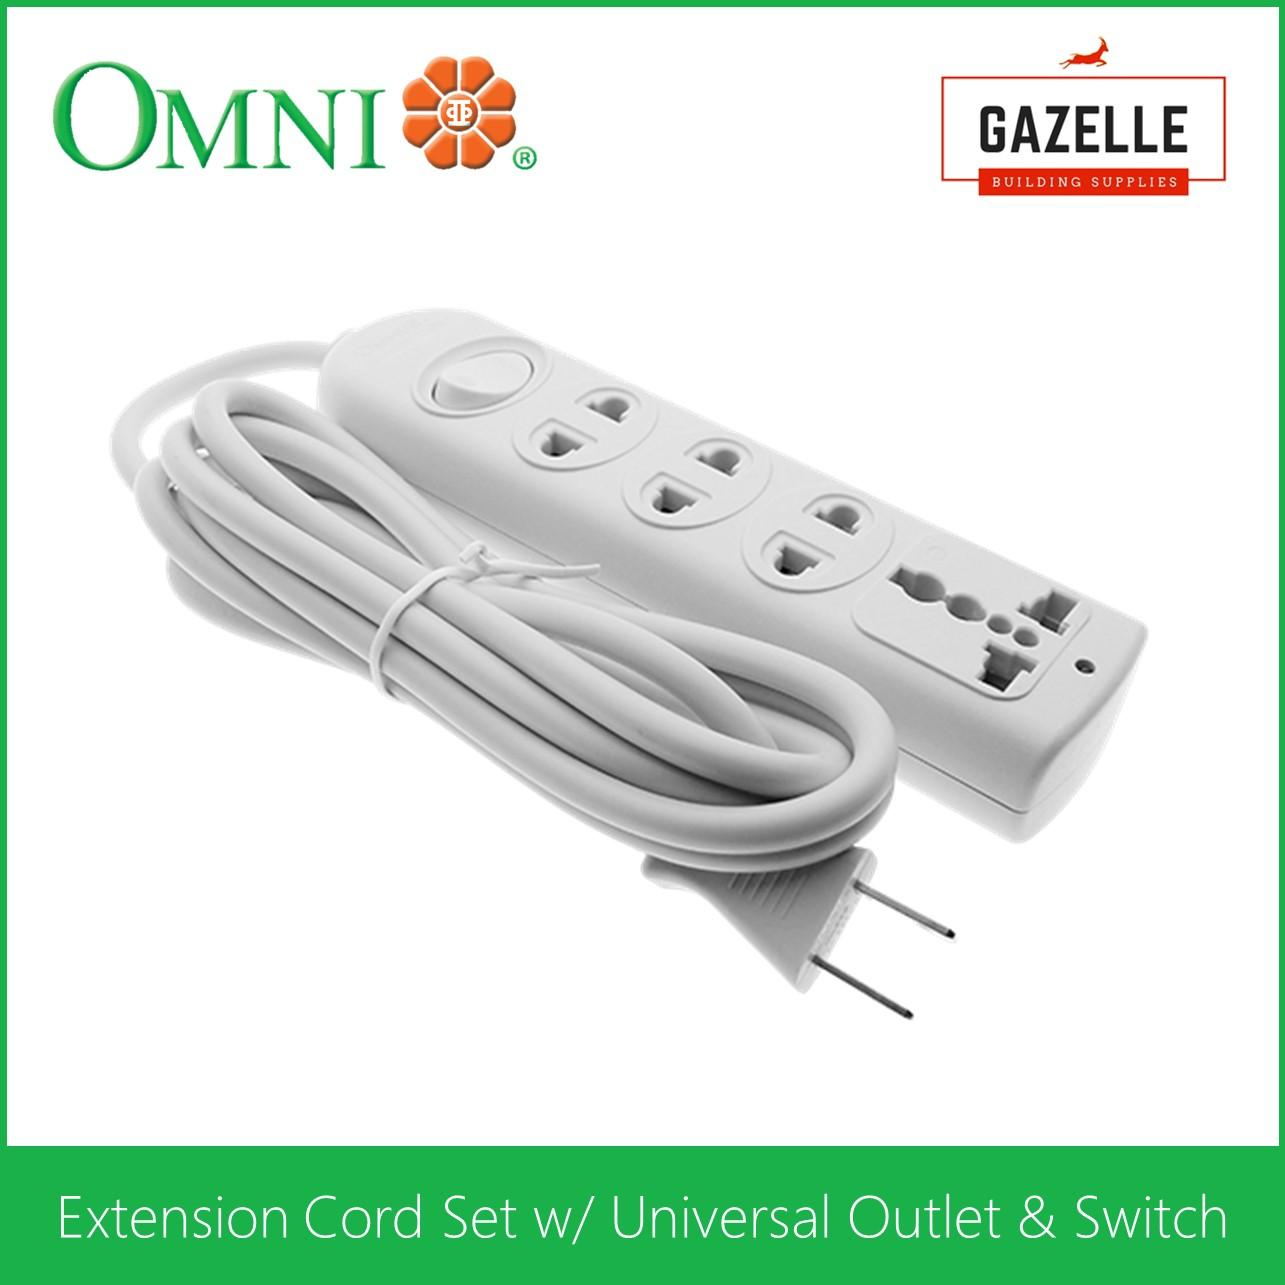 Extension Cord For Sale Electrical Cables Prices Brands Review Wiring A Wall Socket Nz Omni Set W Universal Outlet And Switch Wer 103